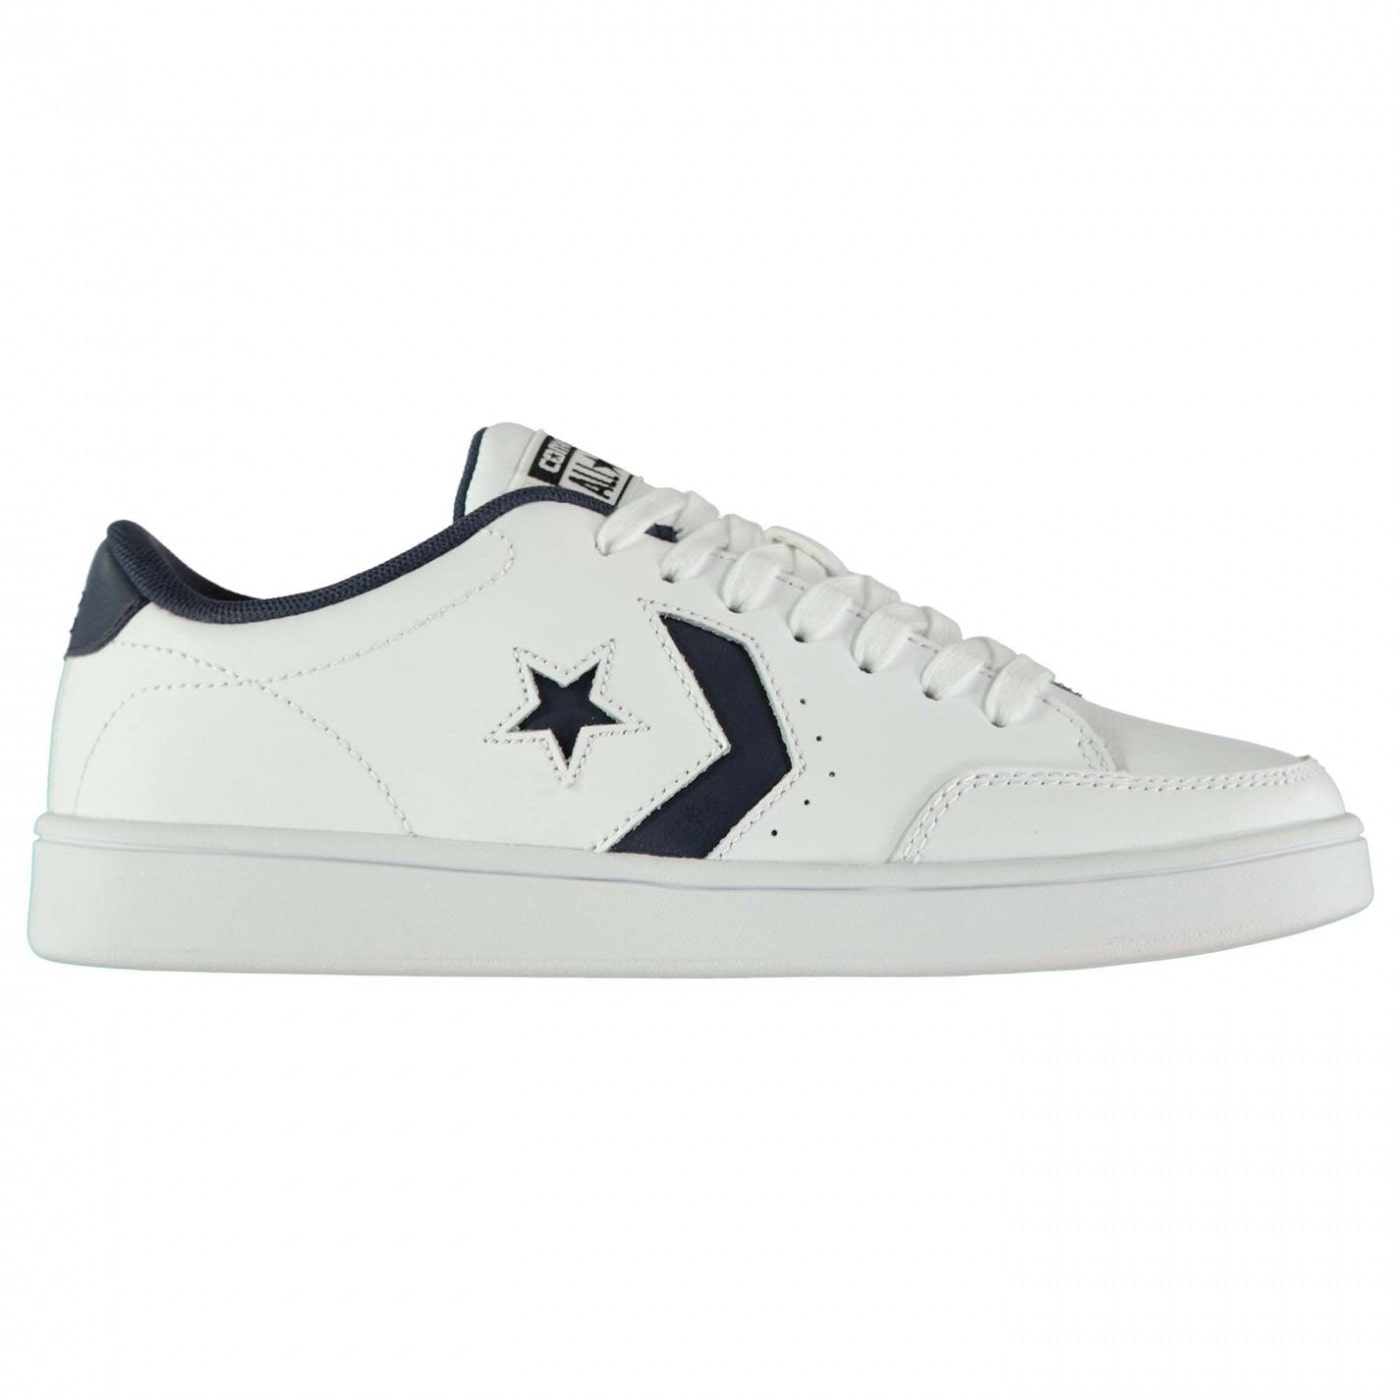 2converse star court trainers